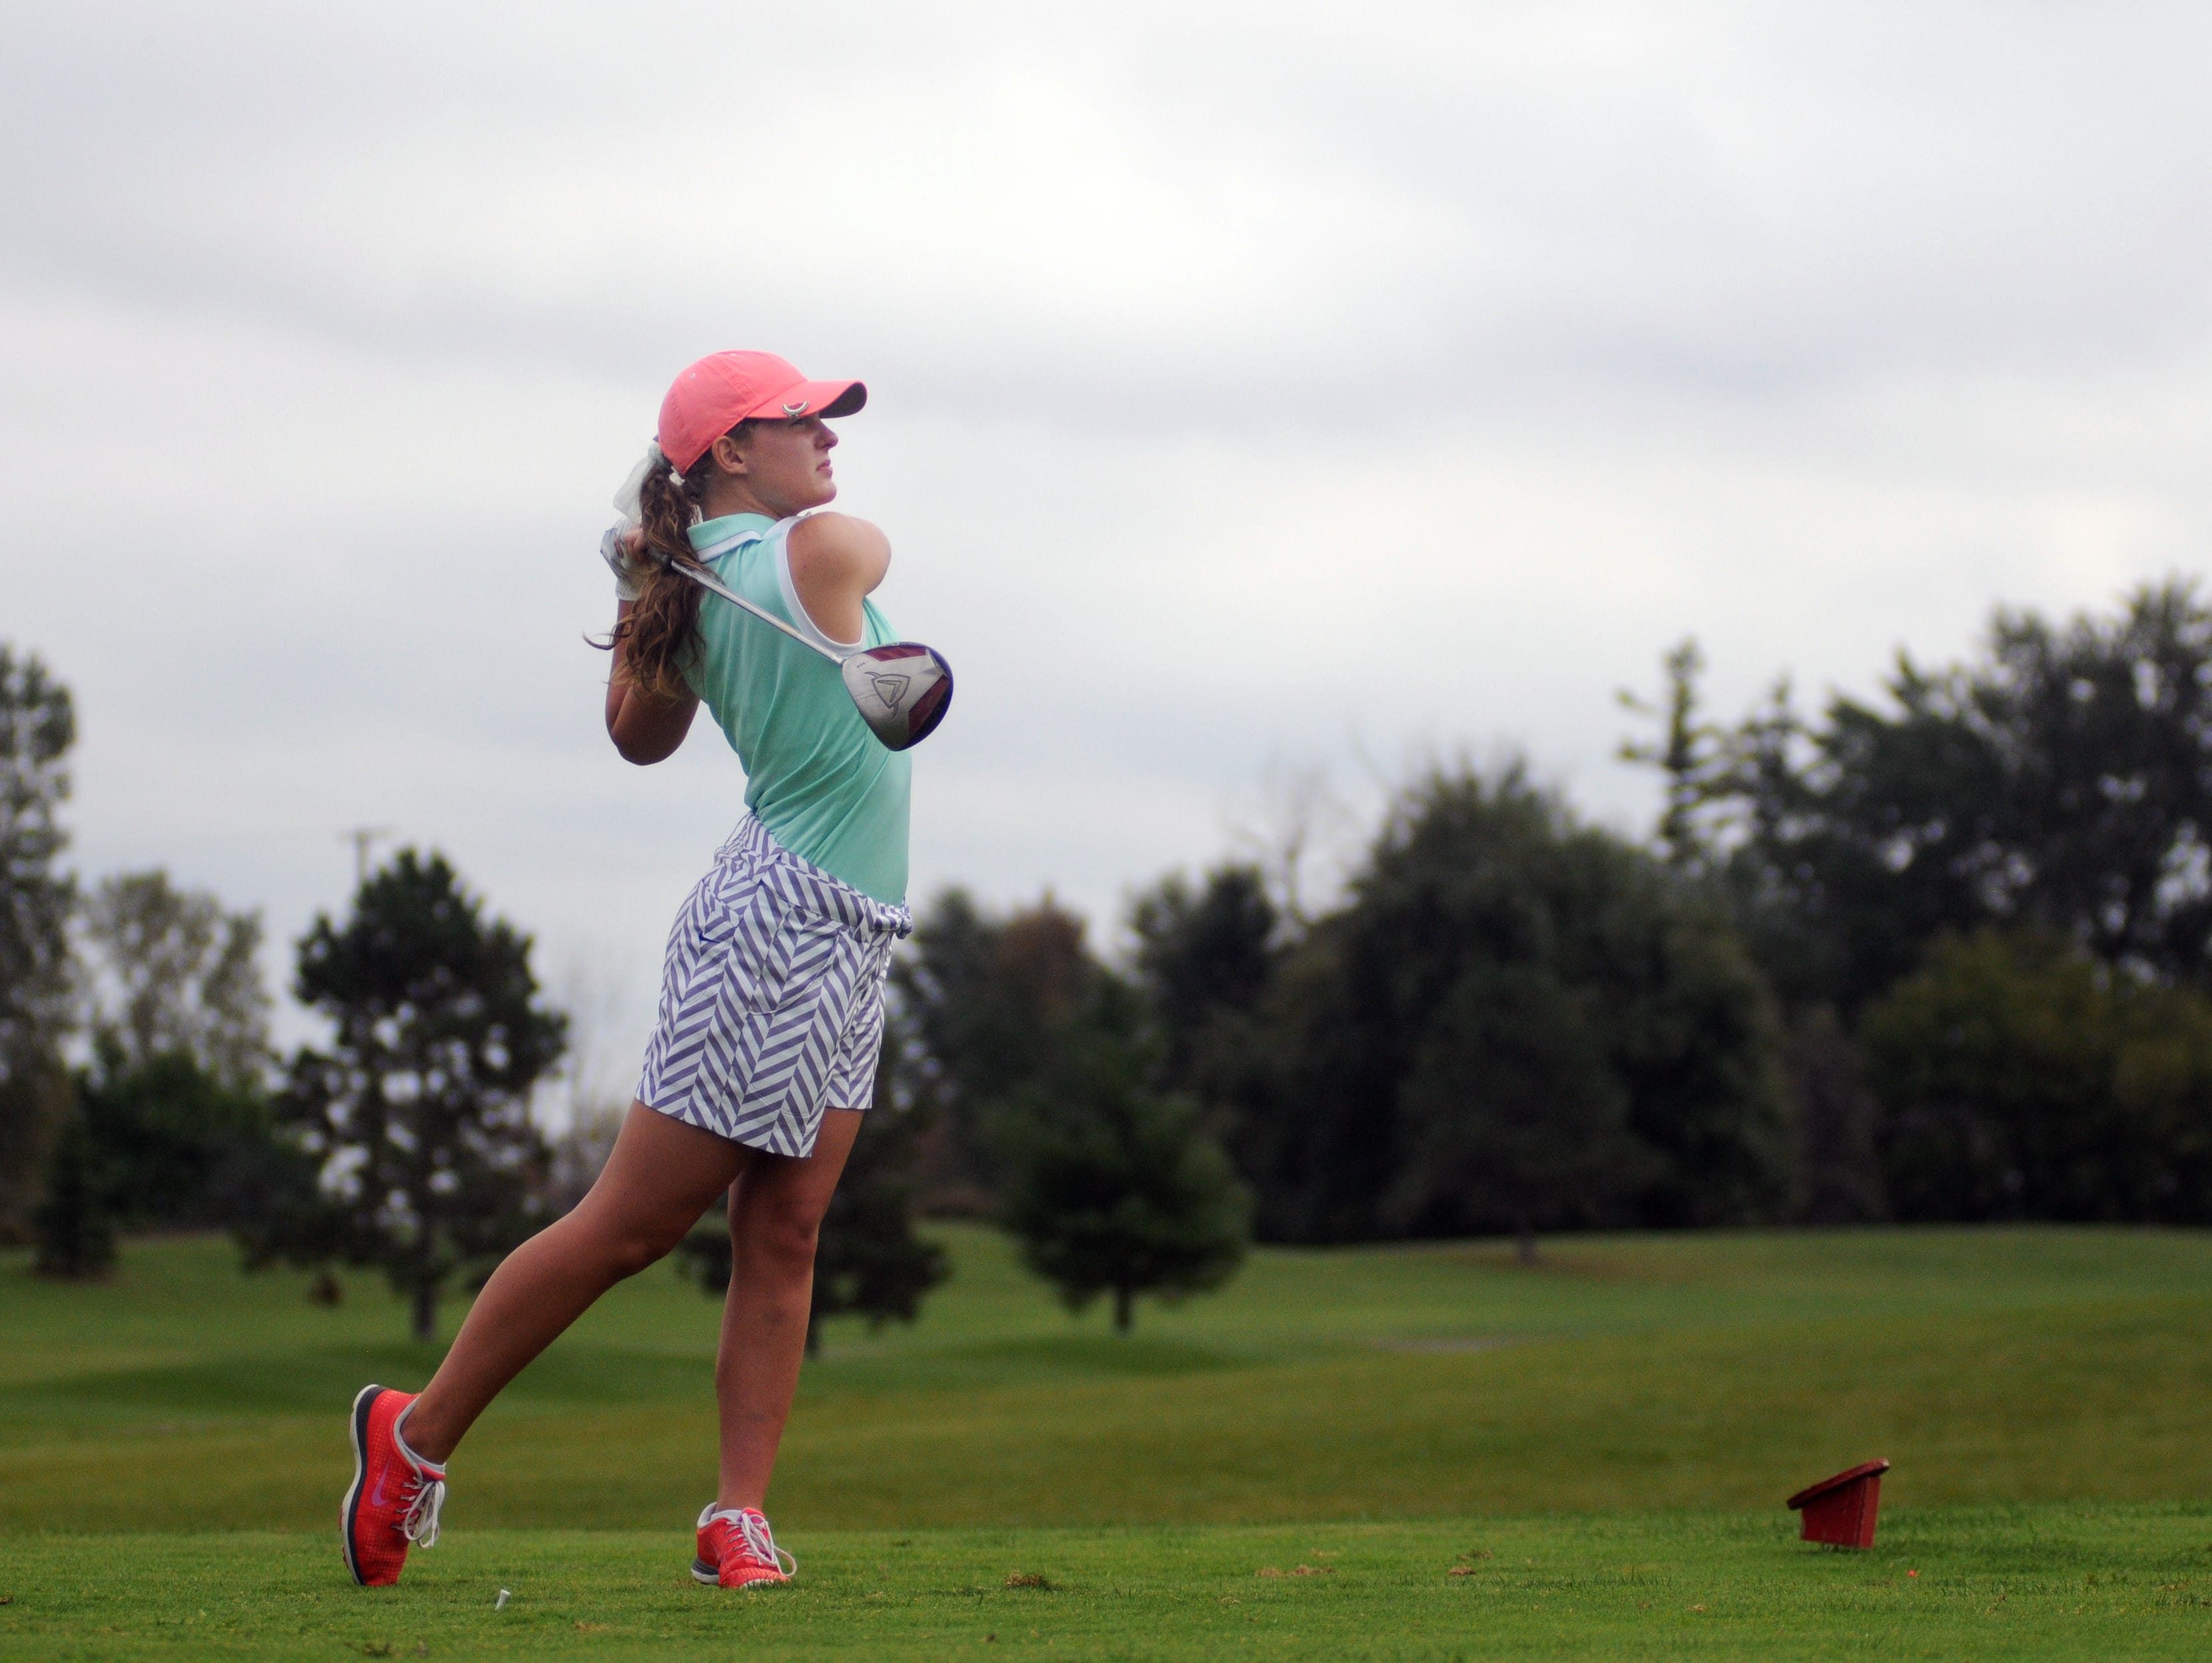 Capac golfer Emma Kerr tees off Monday, Oct. 5, during the St. Clair County Golf Tournament at Holly Meadows Golf Course in Capac.